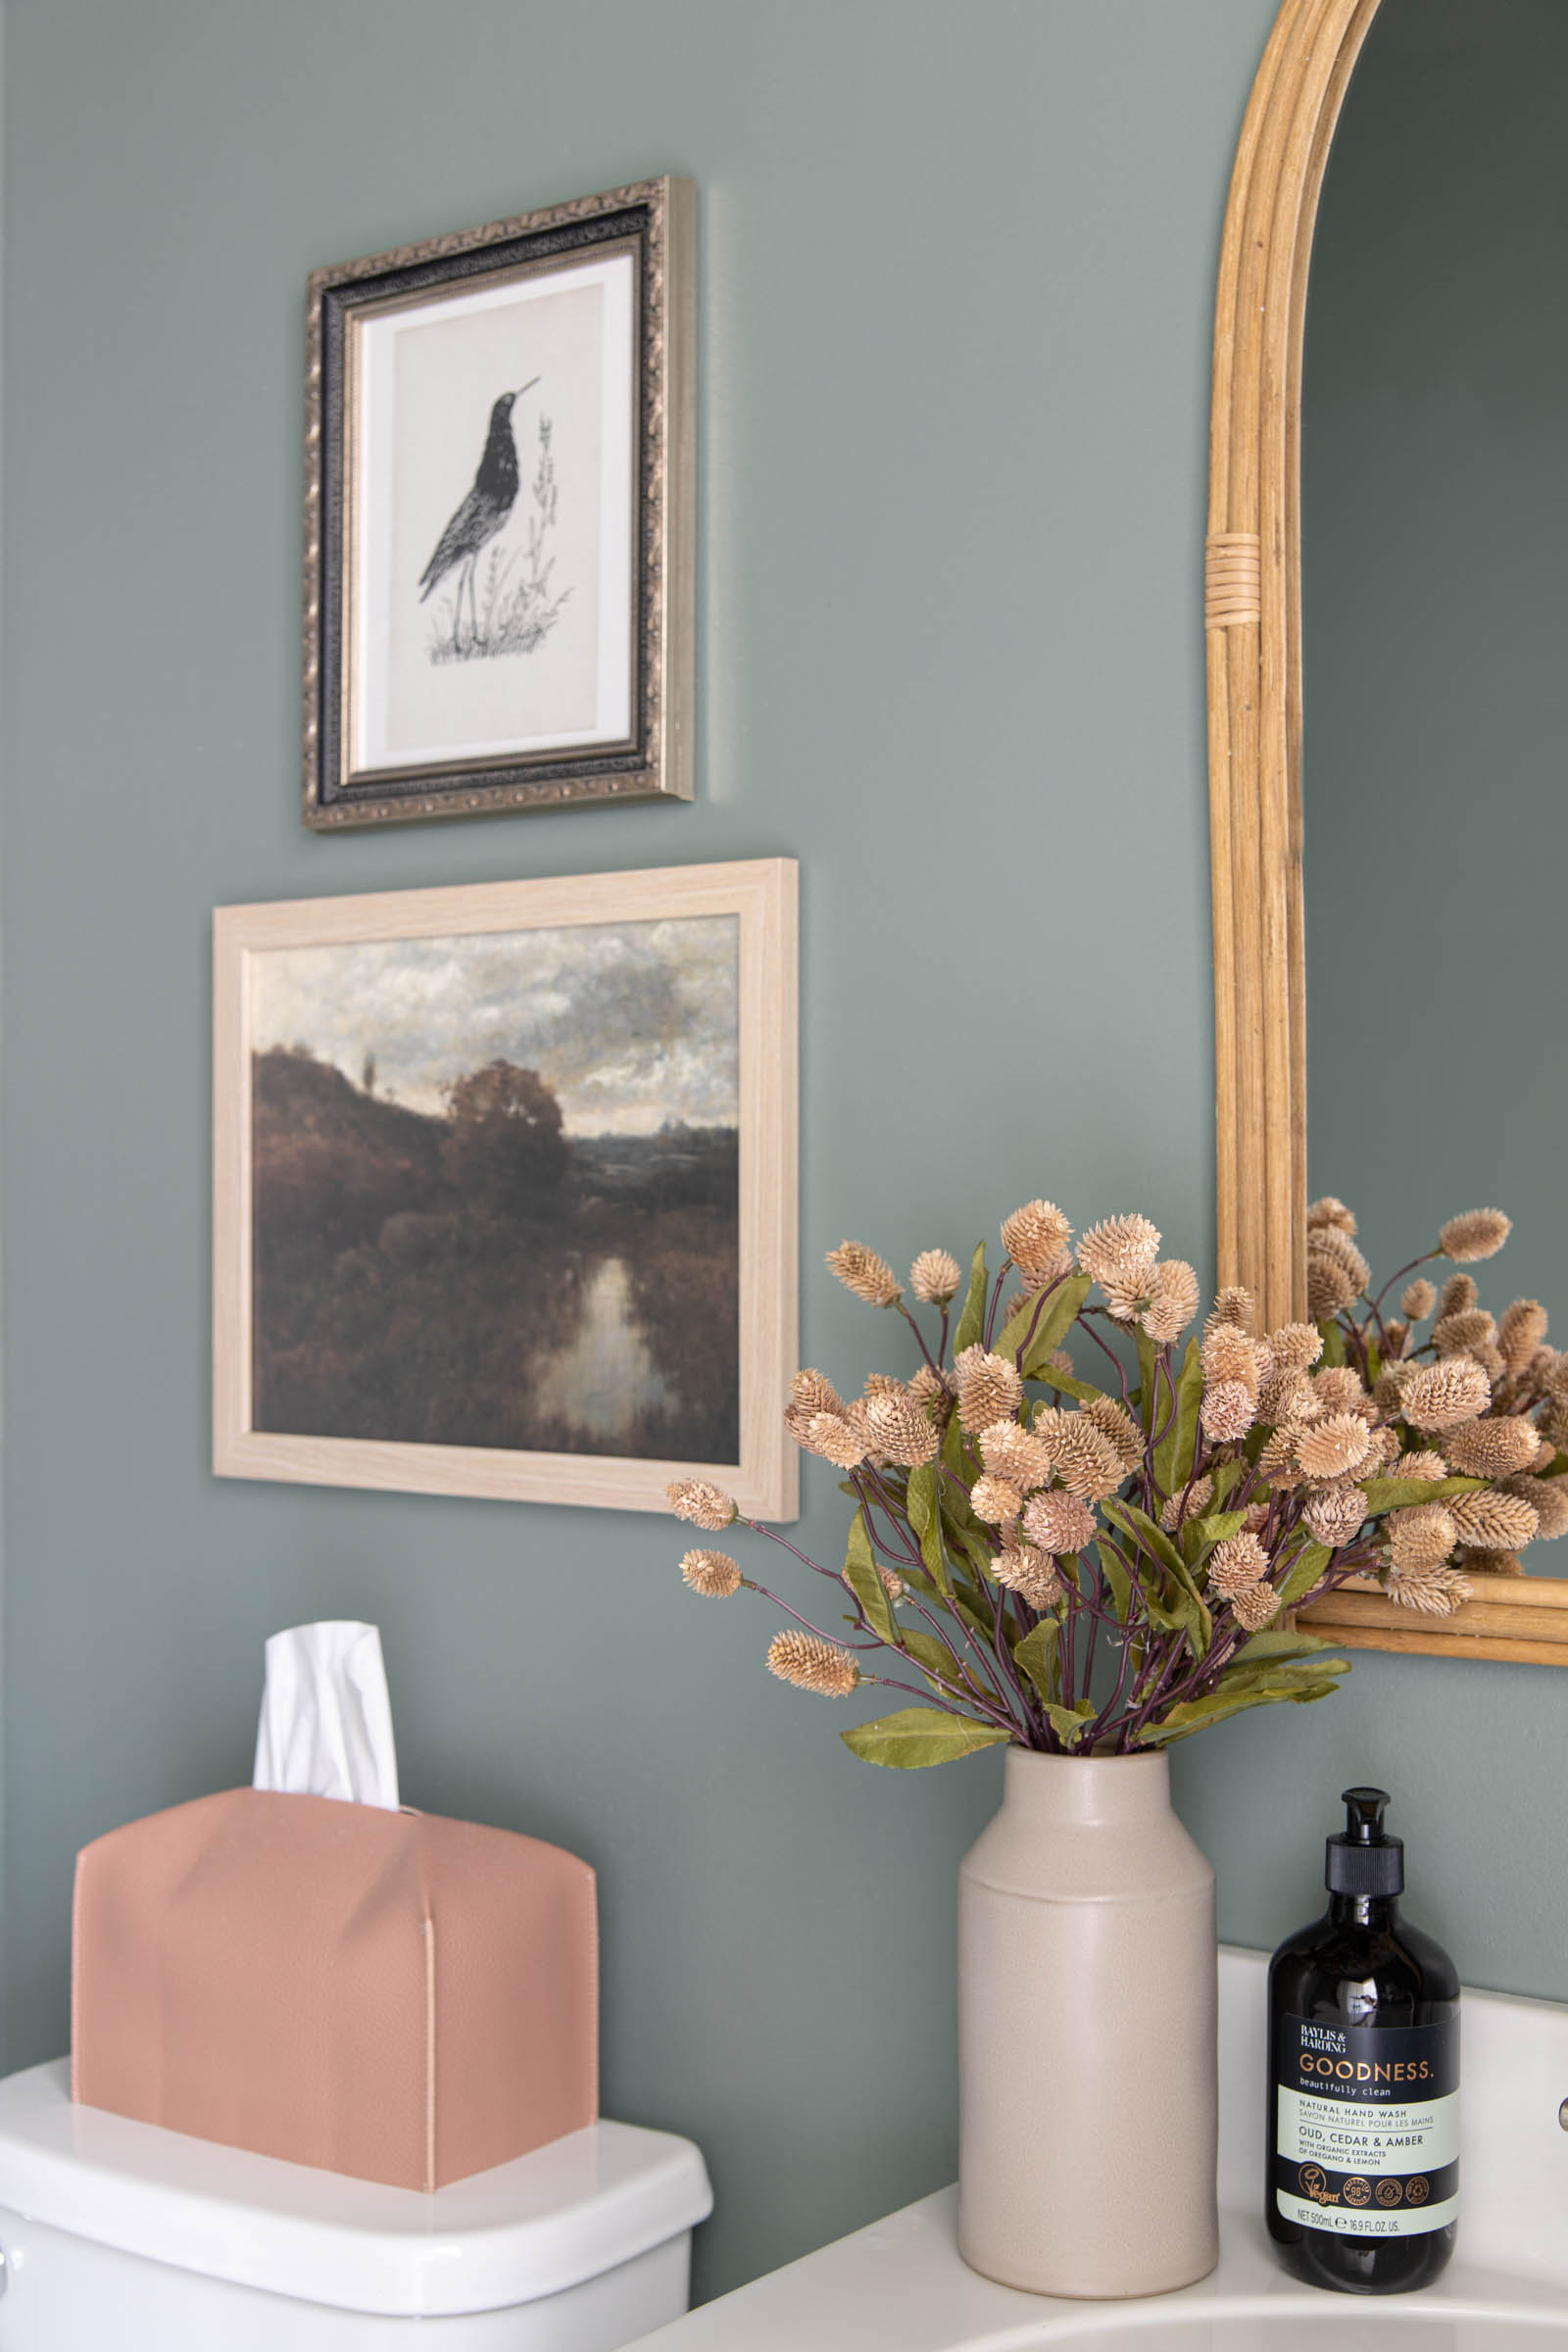 muted green wall paint, arched rattan mirror, vintage landscape art, leather tissue box cover, dried florals